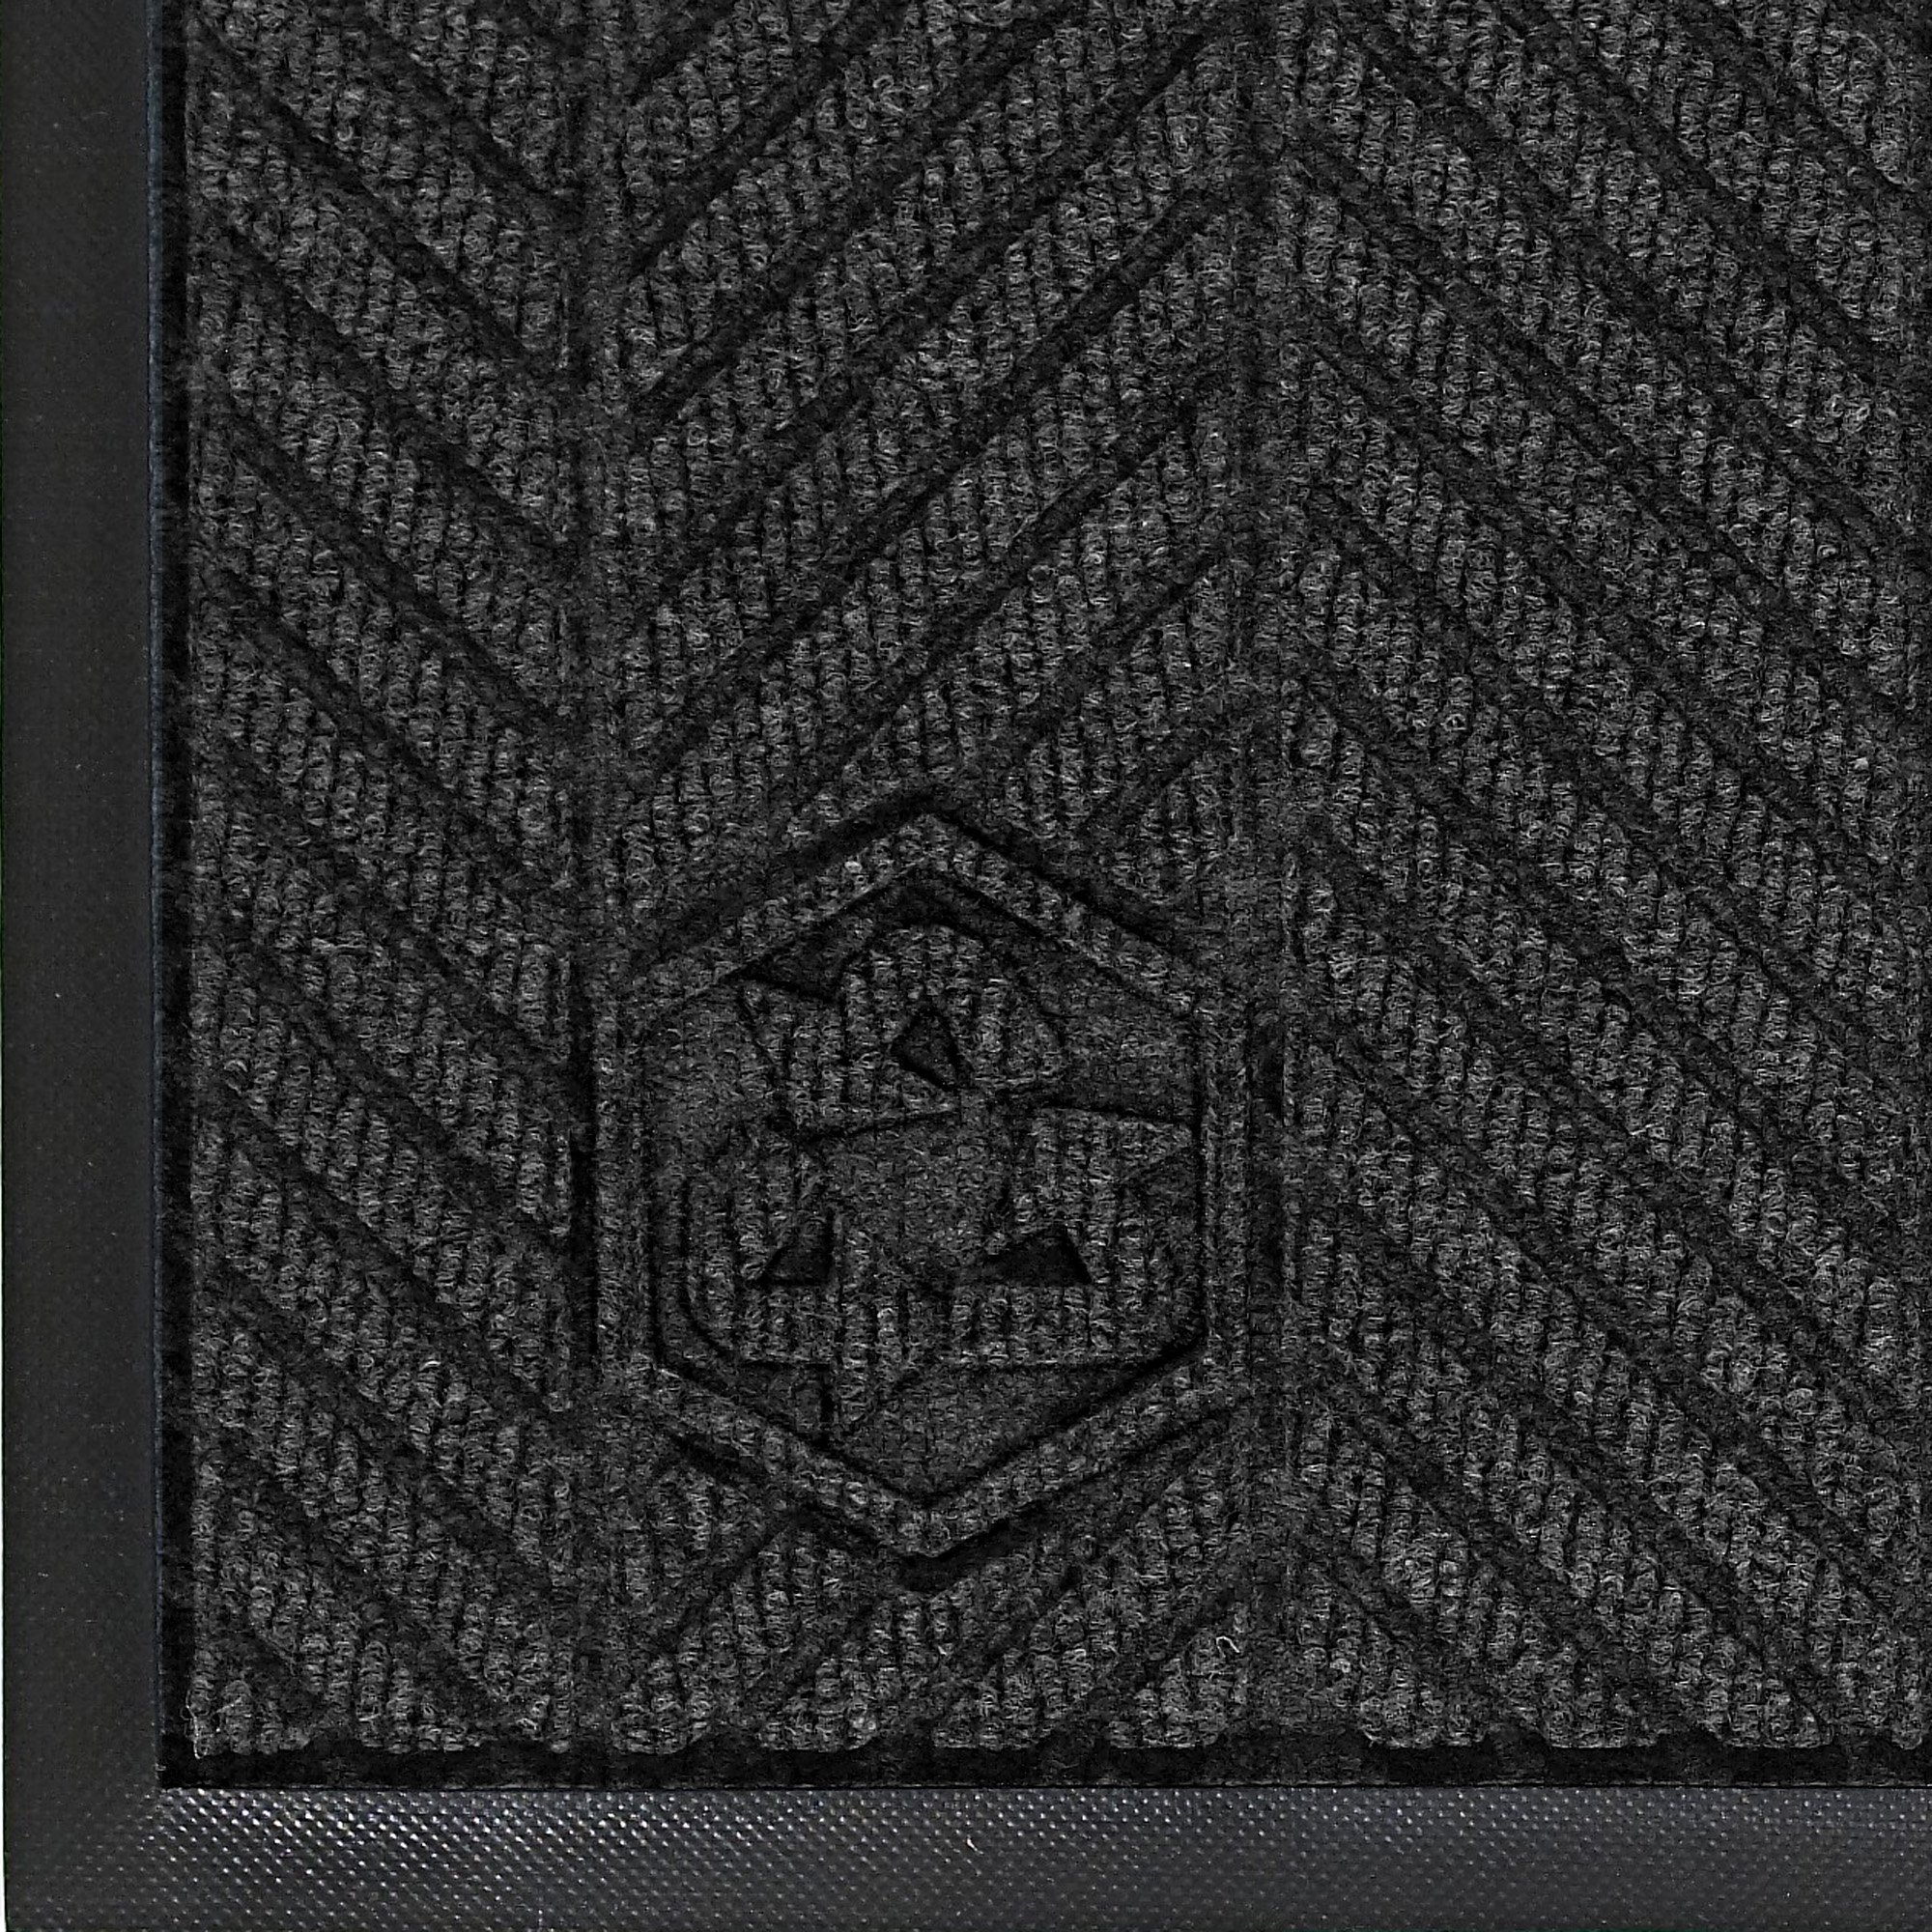 Andersen 2240 Waterhog Classic ECO Elite PET Polyester Entrance Indoor Floor Mat, SBR Rubber Backing, 6' Length x 4' Width, 3/8'' Thick, Black Smoke